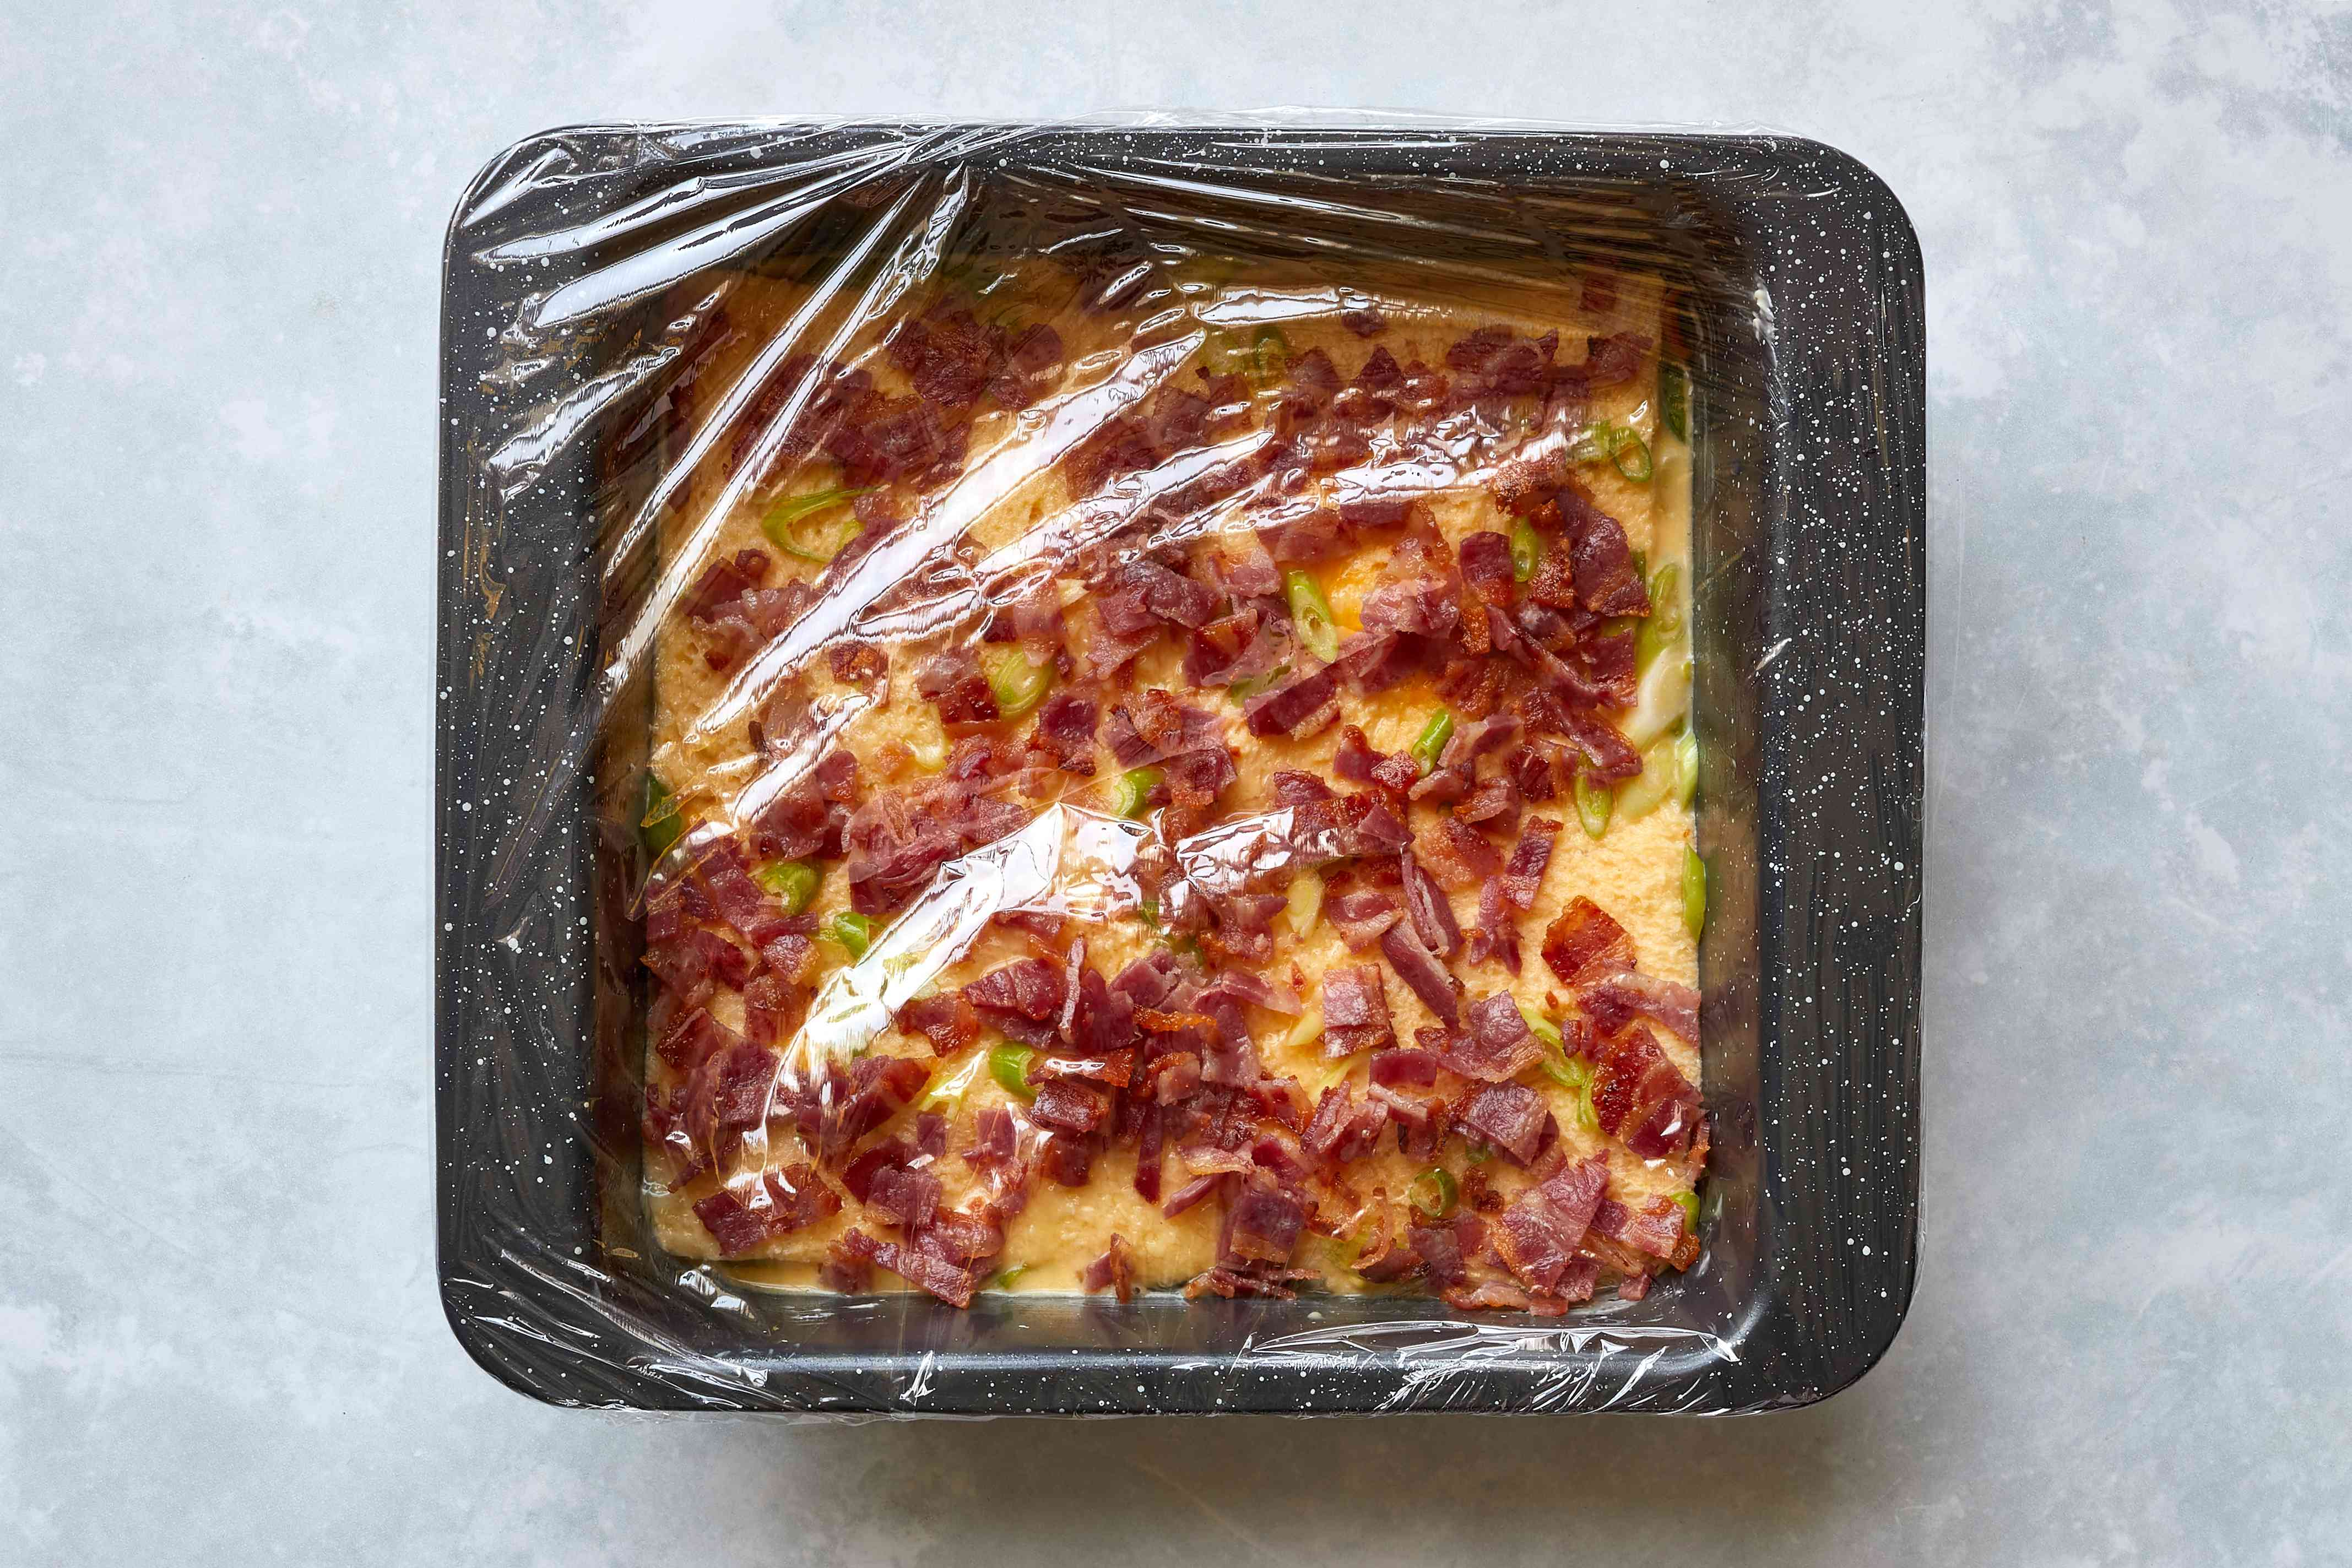 plastic wrap over the baking dish with bacon and eggs casserole